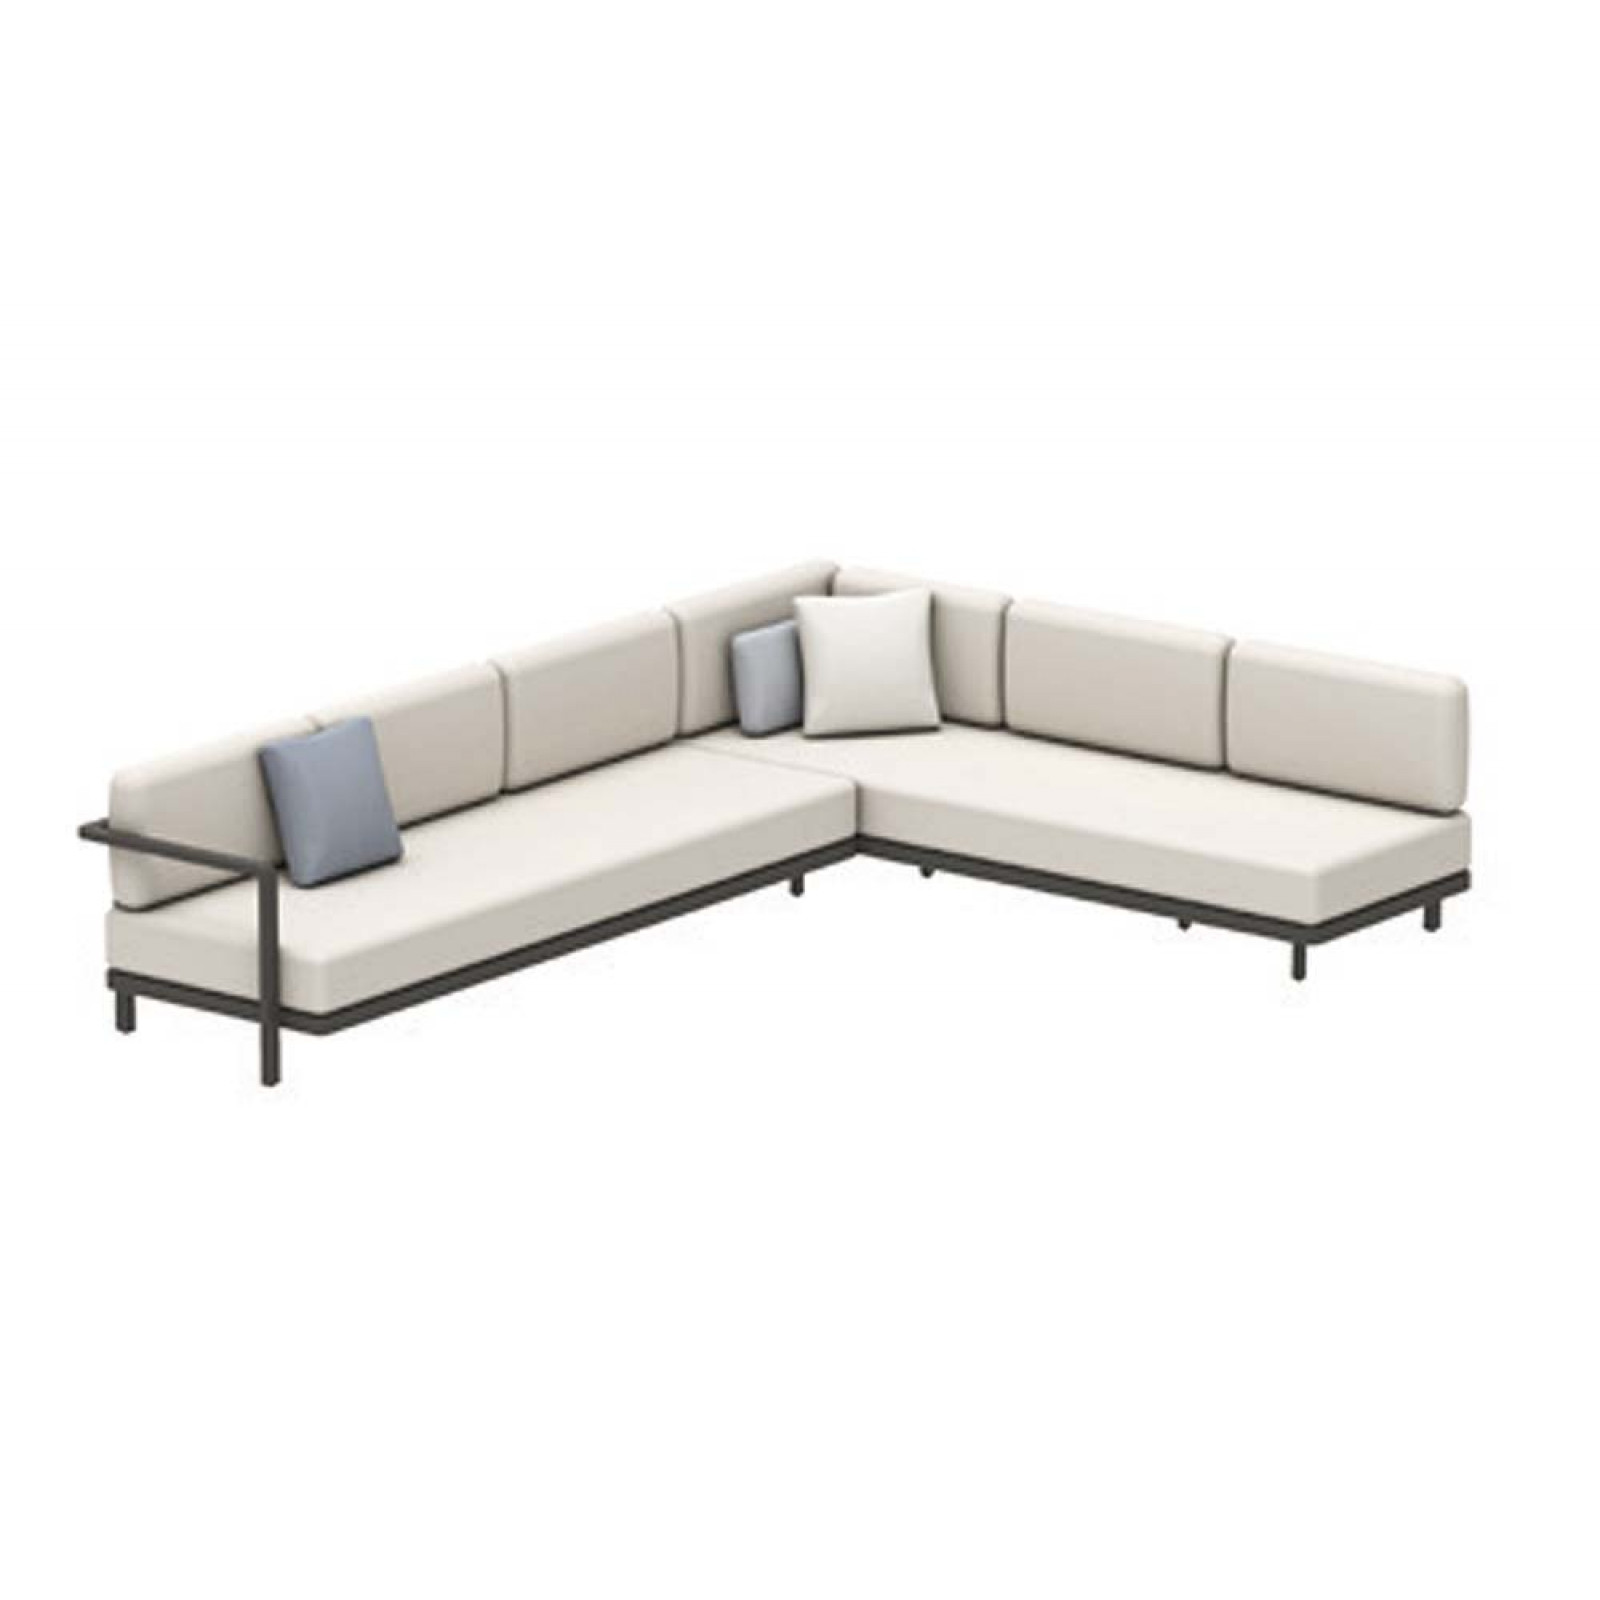 Set A • Royal Botania Red Label • Alura Lounge Ecksofa 09 mit Ablagefläche • 330 × 245 cm links